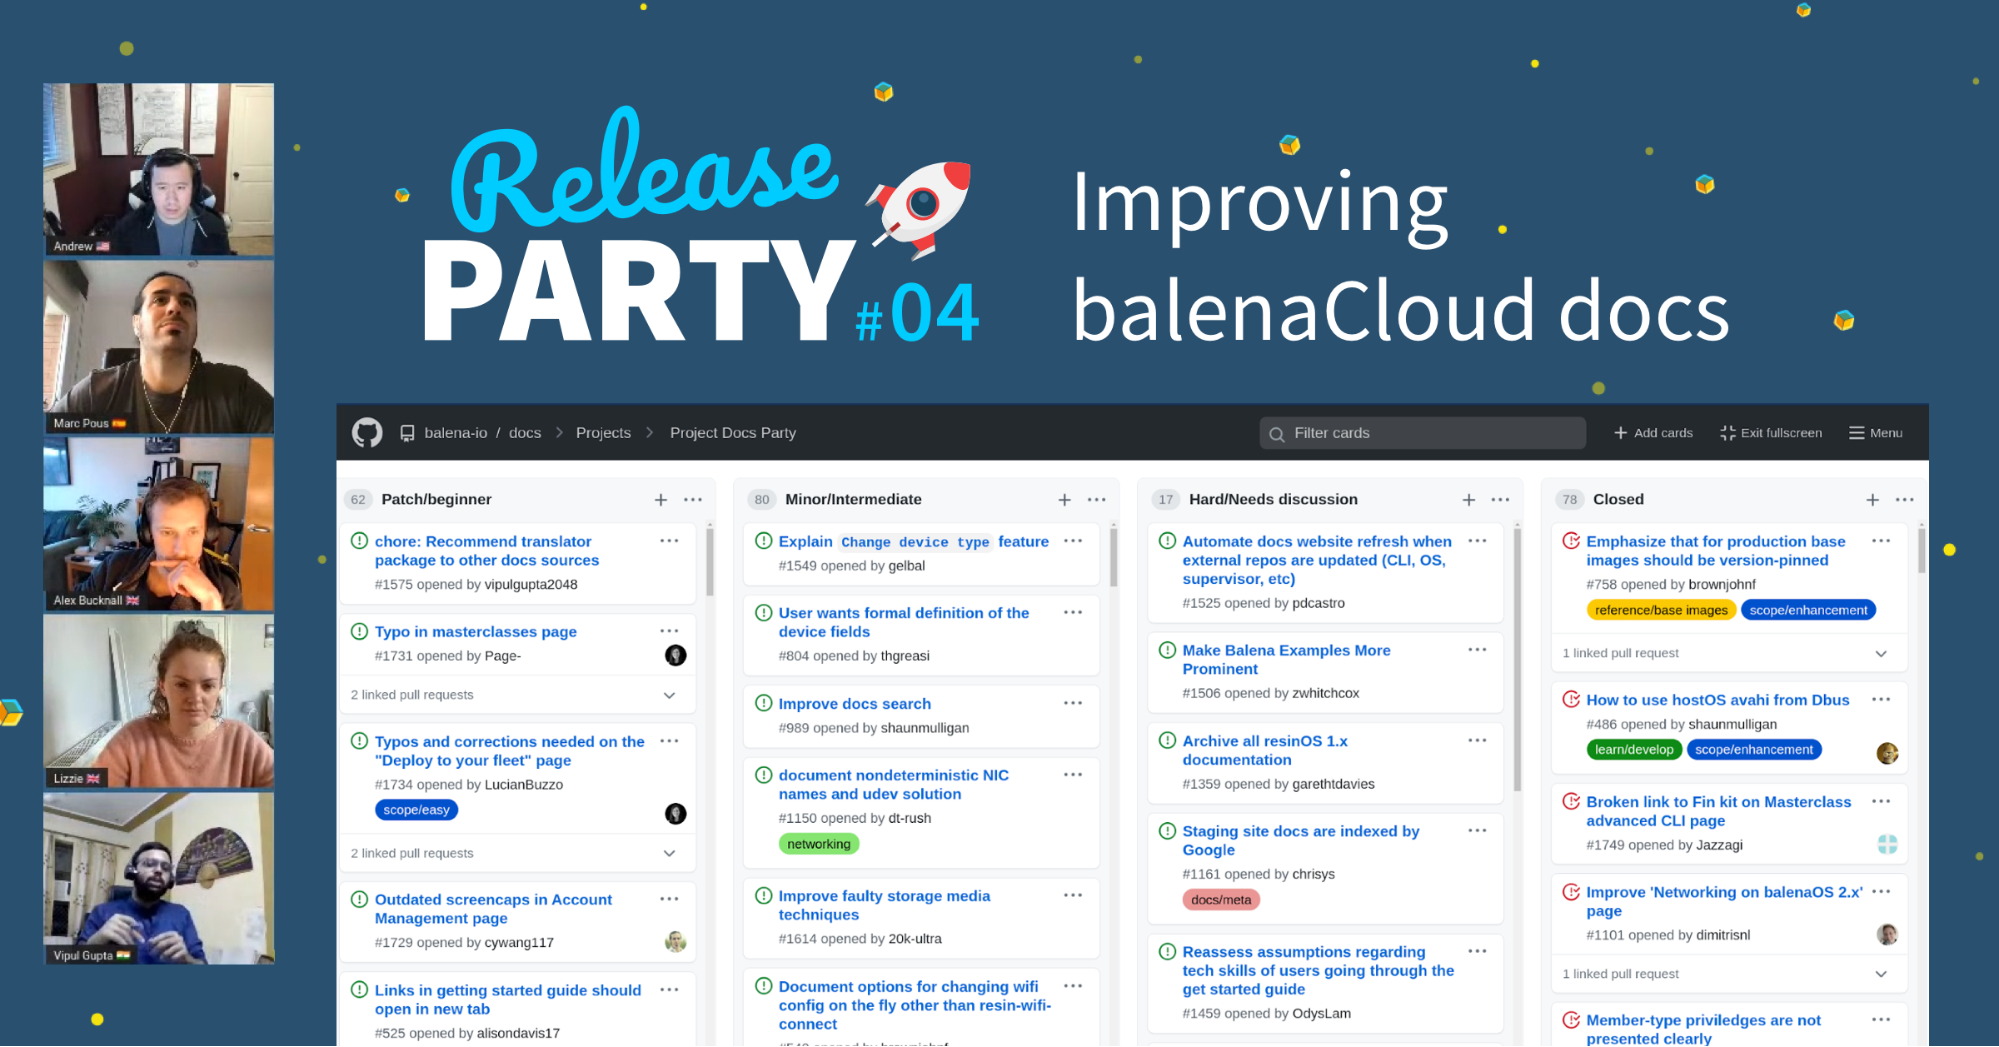 Release Party 4 was all about improving documentation